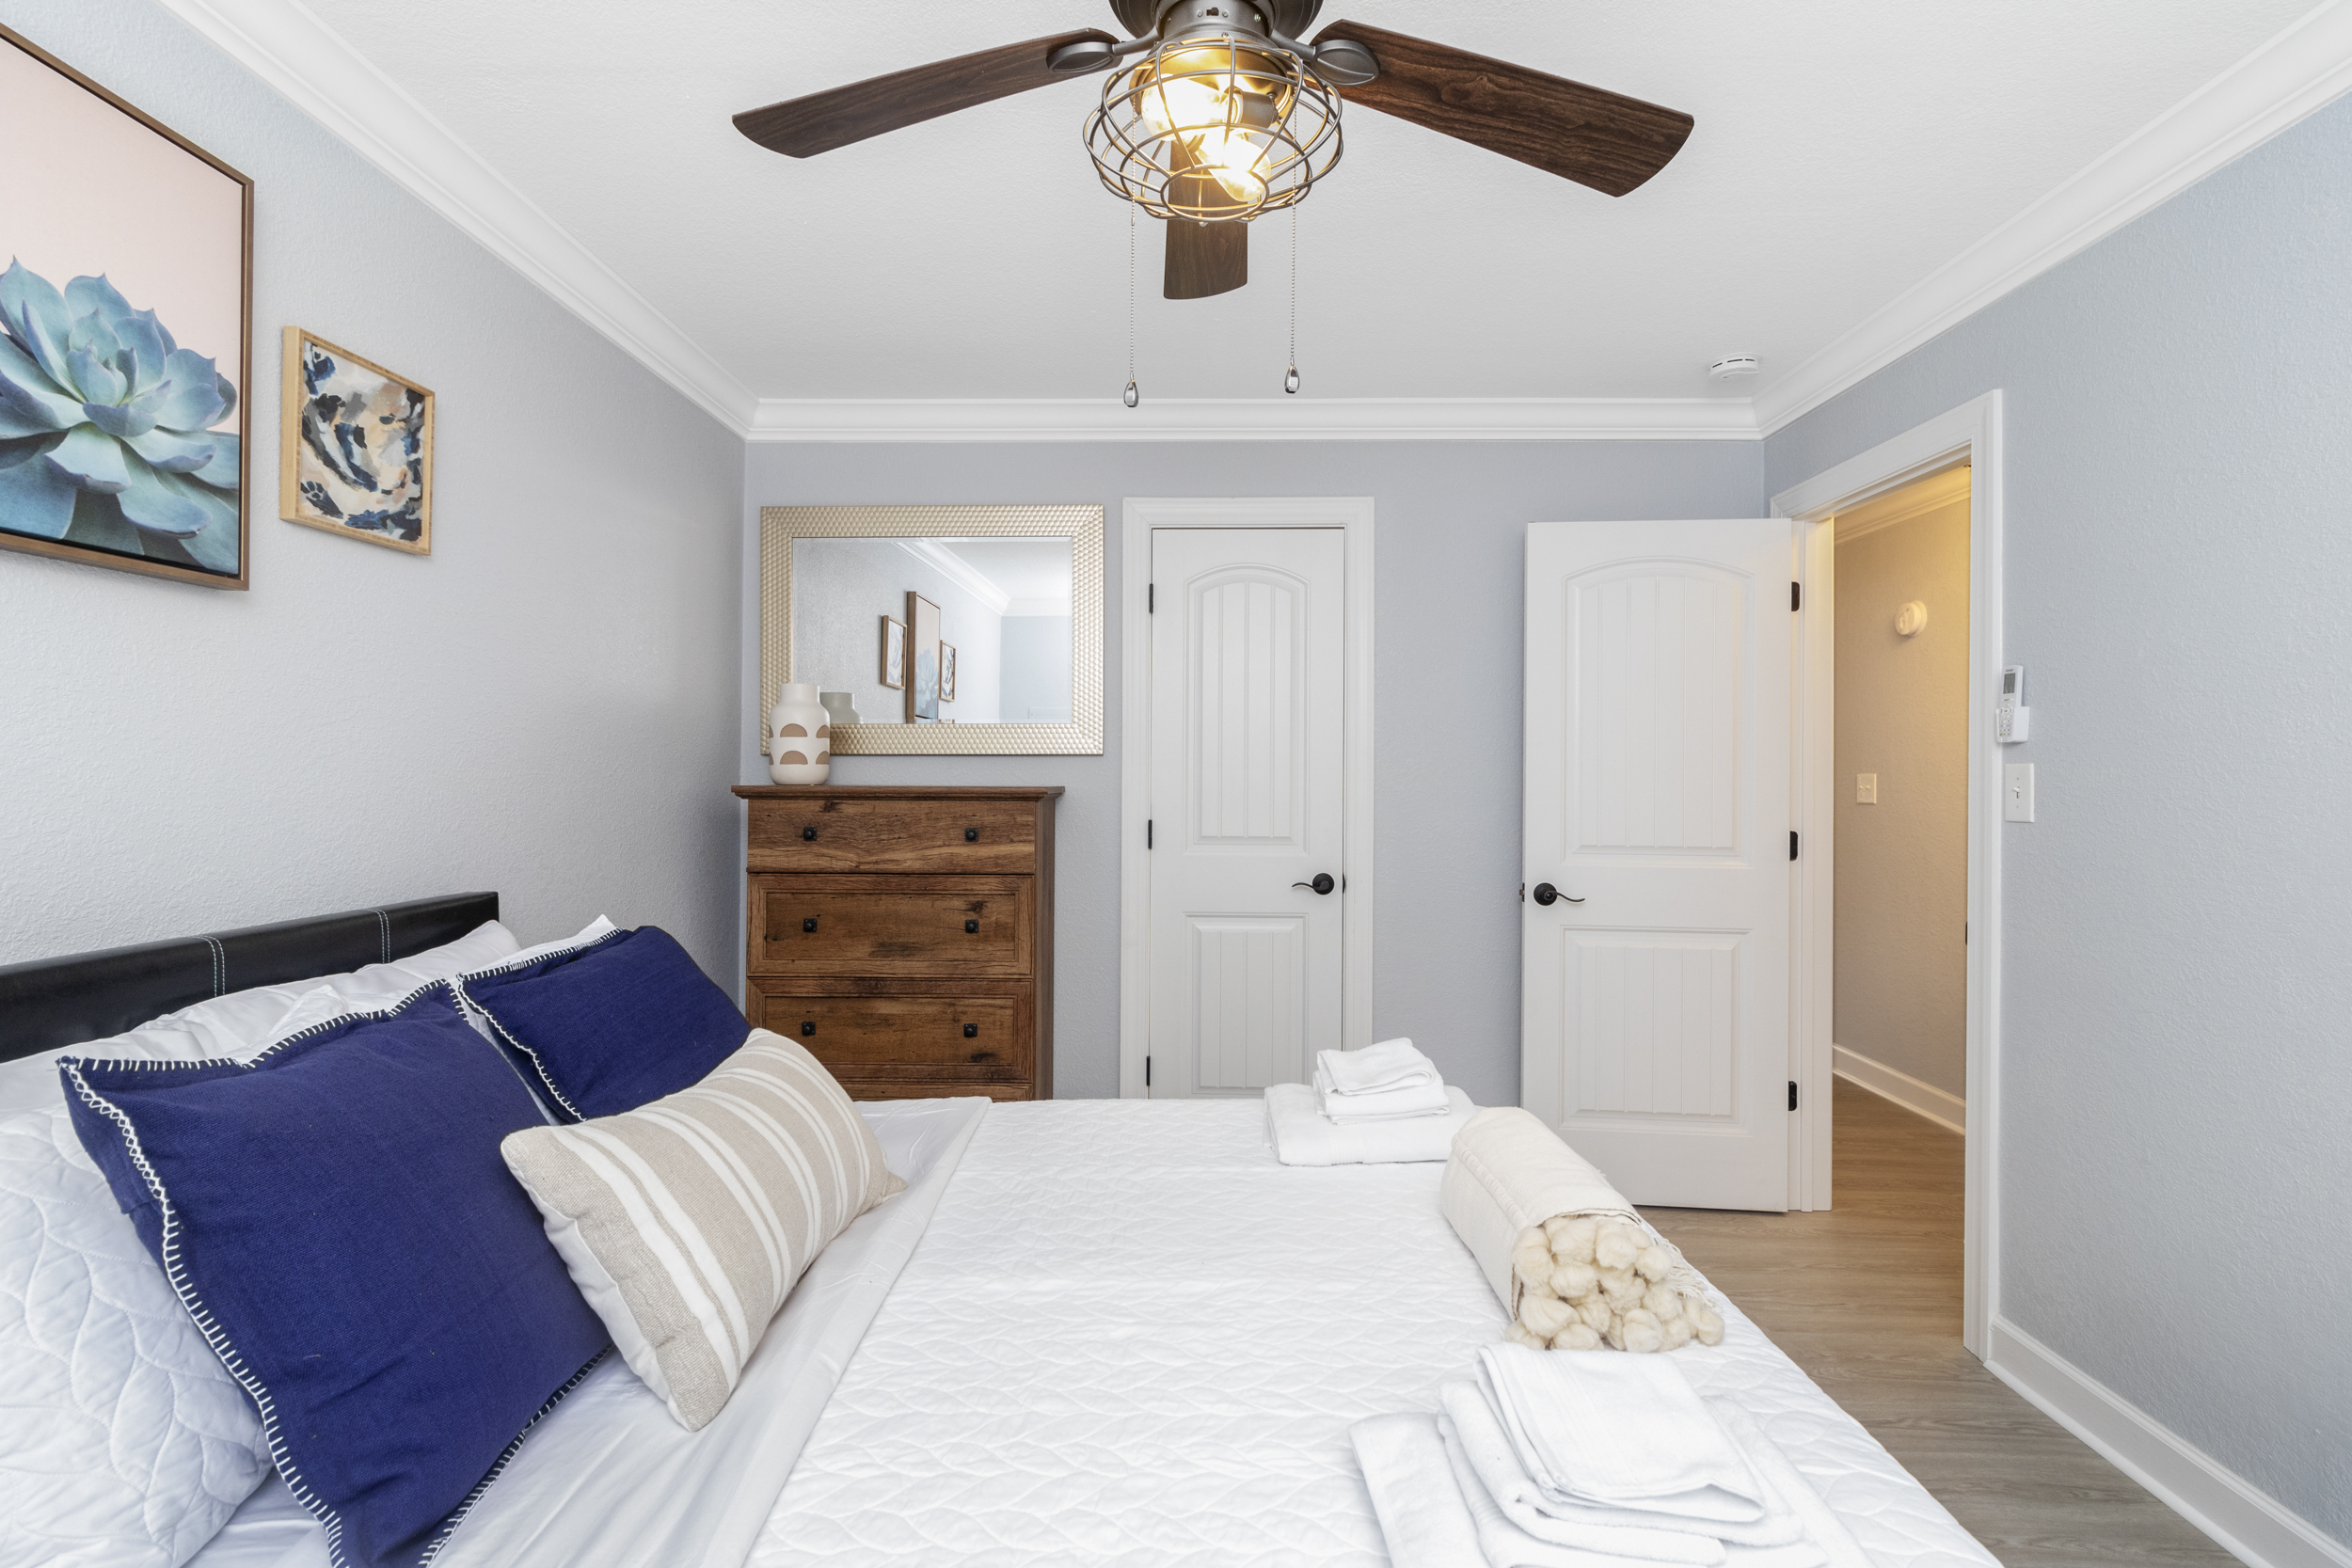 well made bed with blue pillows, brown dresser, and open bedroom door